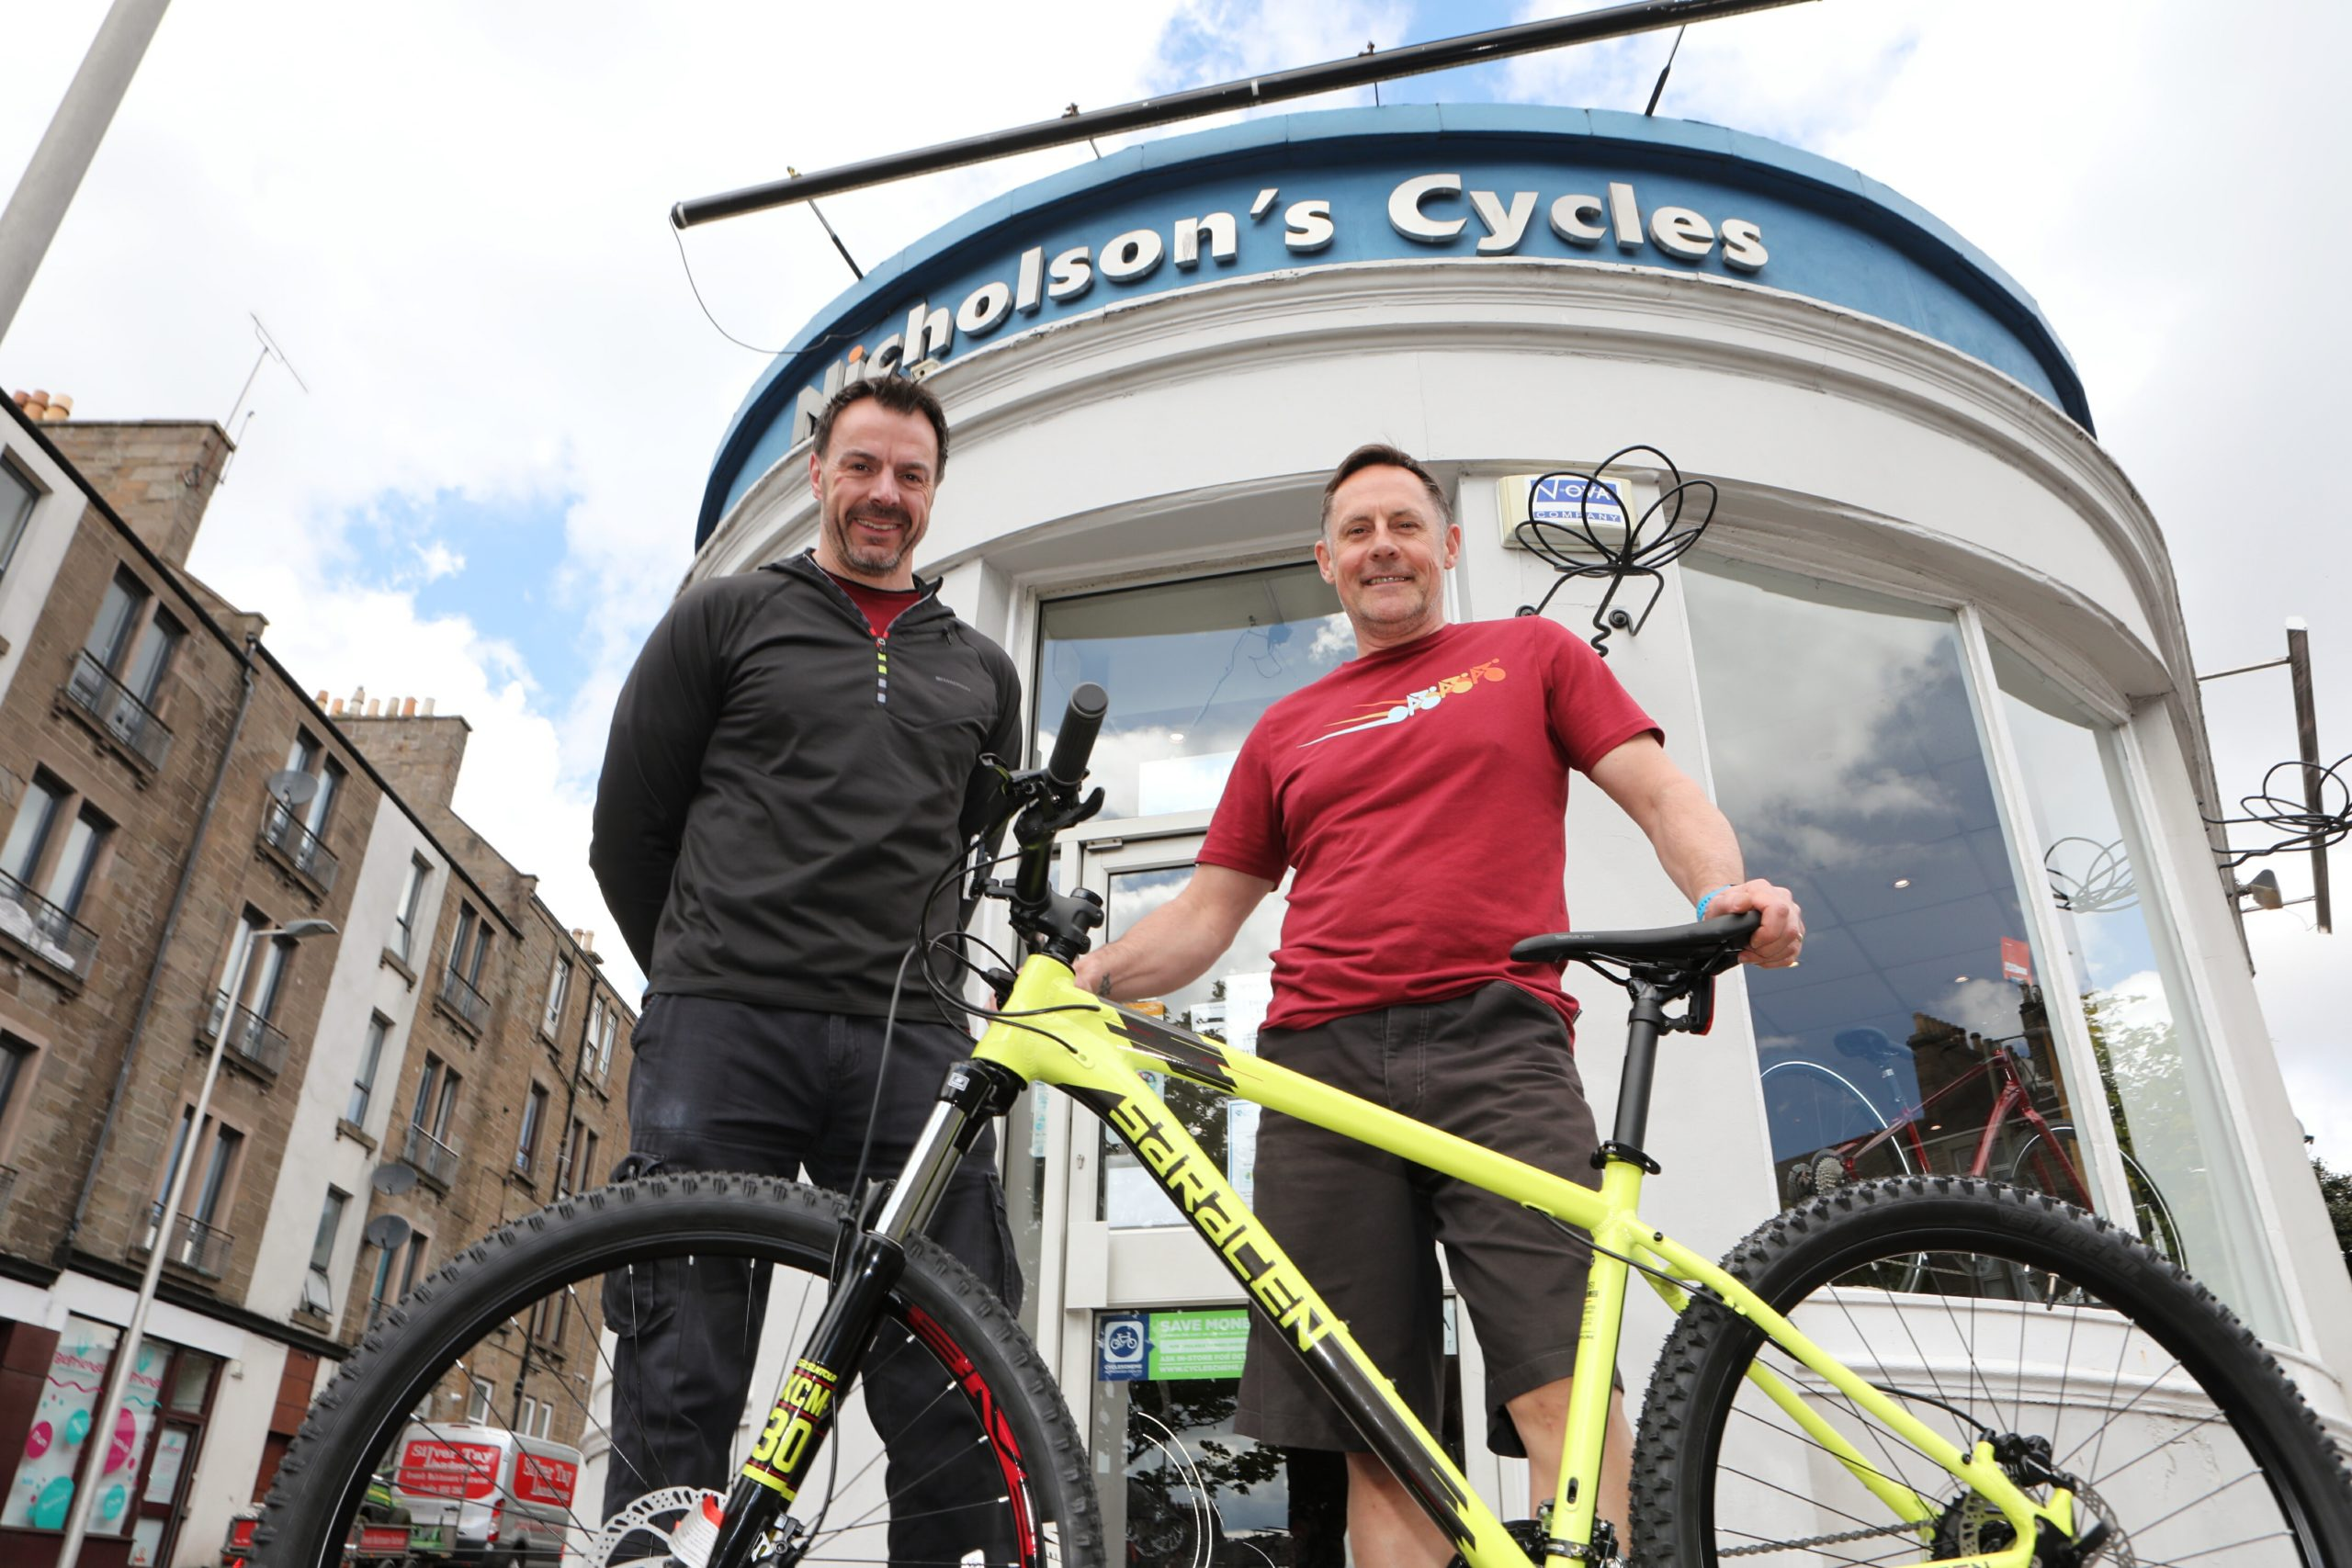 Colin Murray (right), owner of Nicolson's Cycles, with sales manager Mark Griffin.